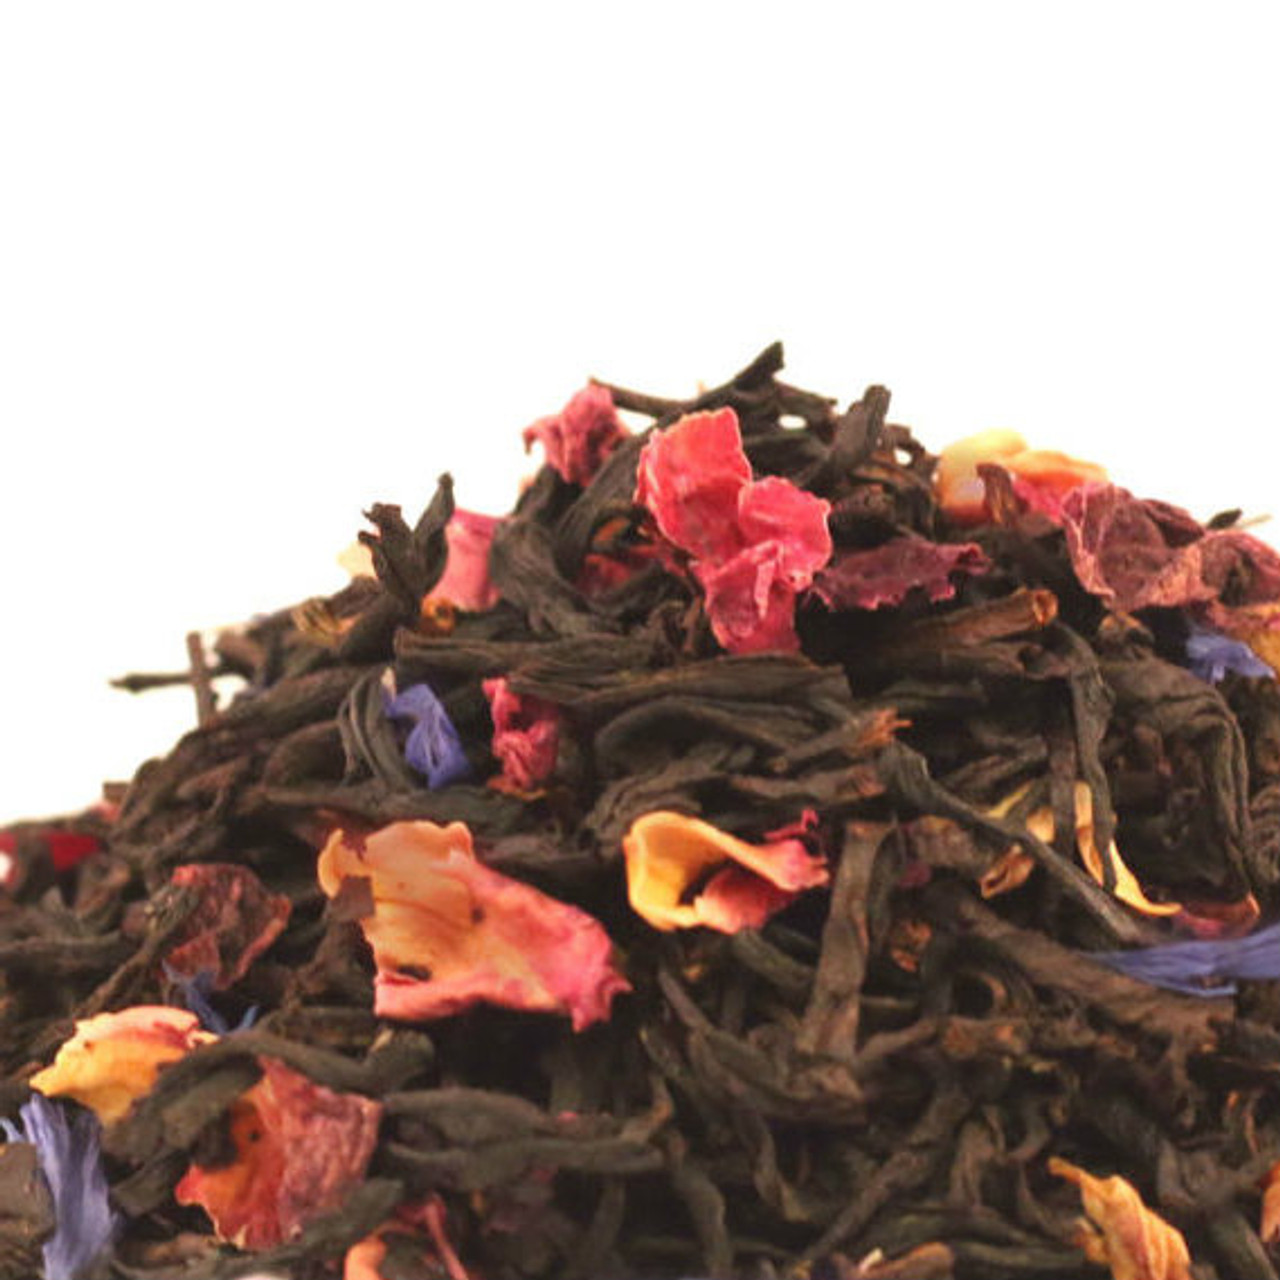 Our hand blended English Rose Black combines high quality Indian and Ceylon black teas with rose petals and natural rose flavoring for a delicate floral cup that is perfectly balanced with just the right notes to highlight the beauty of this traditional English favorite. Perfect hot with a splash of cream or iced with or without sweetener as you wish. This tea benefits from a shortened brewing time of 2 ½- 3 minutes if a lighter delicate cup is preferred.